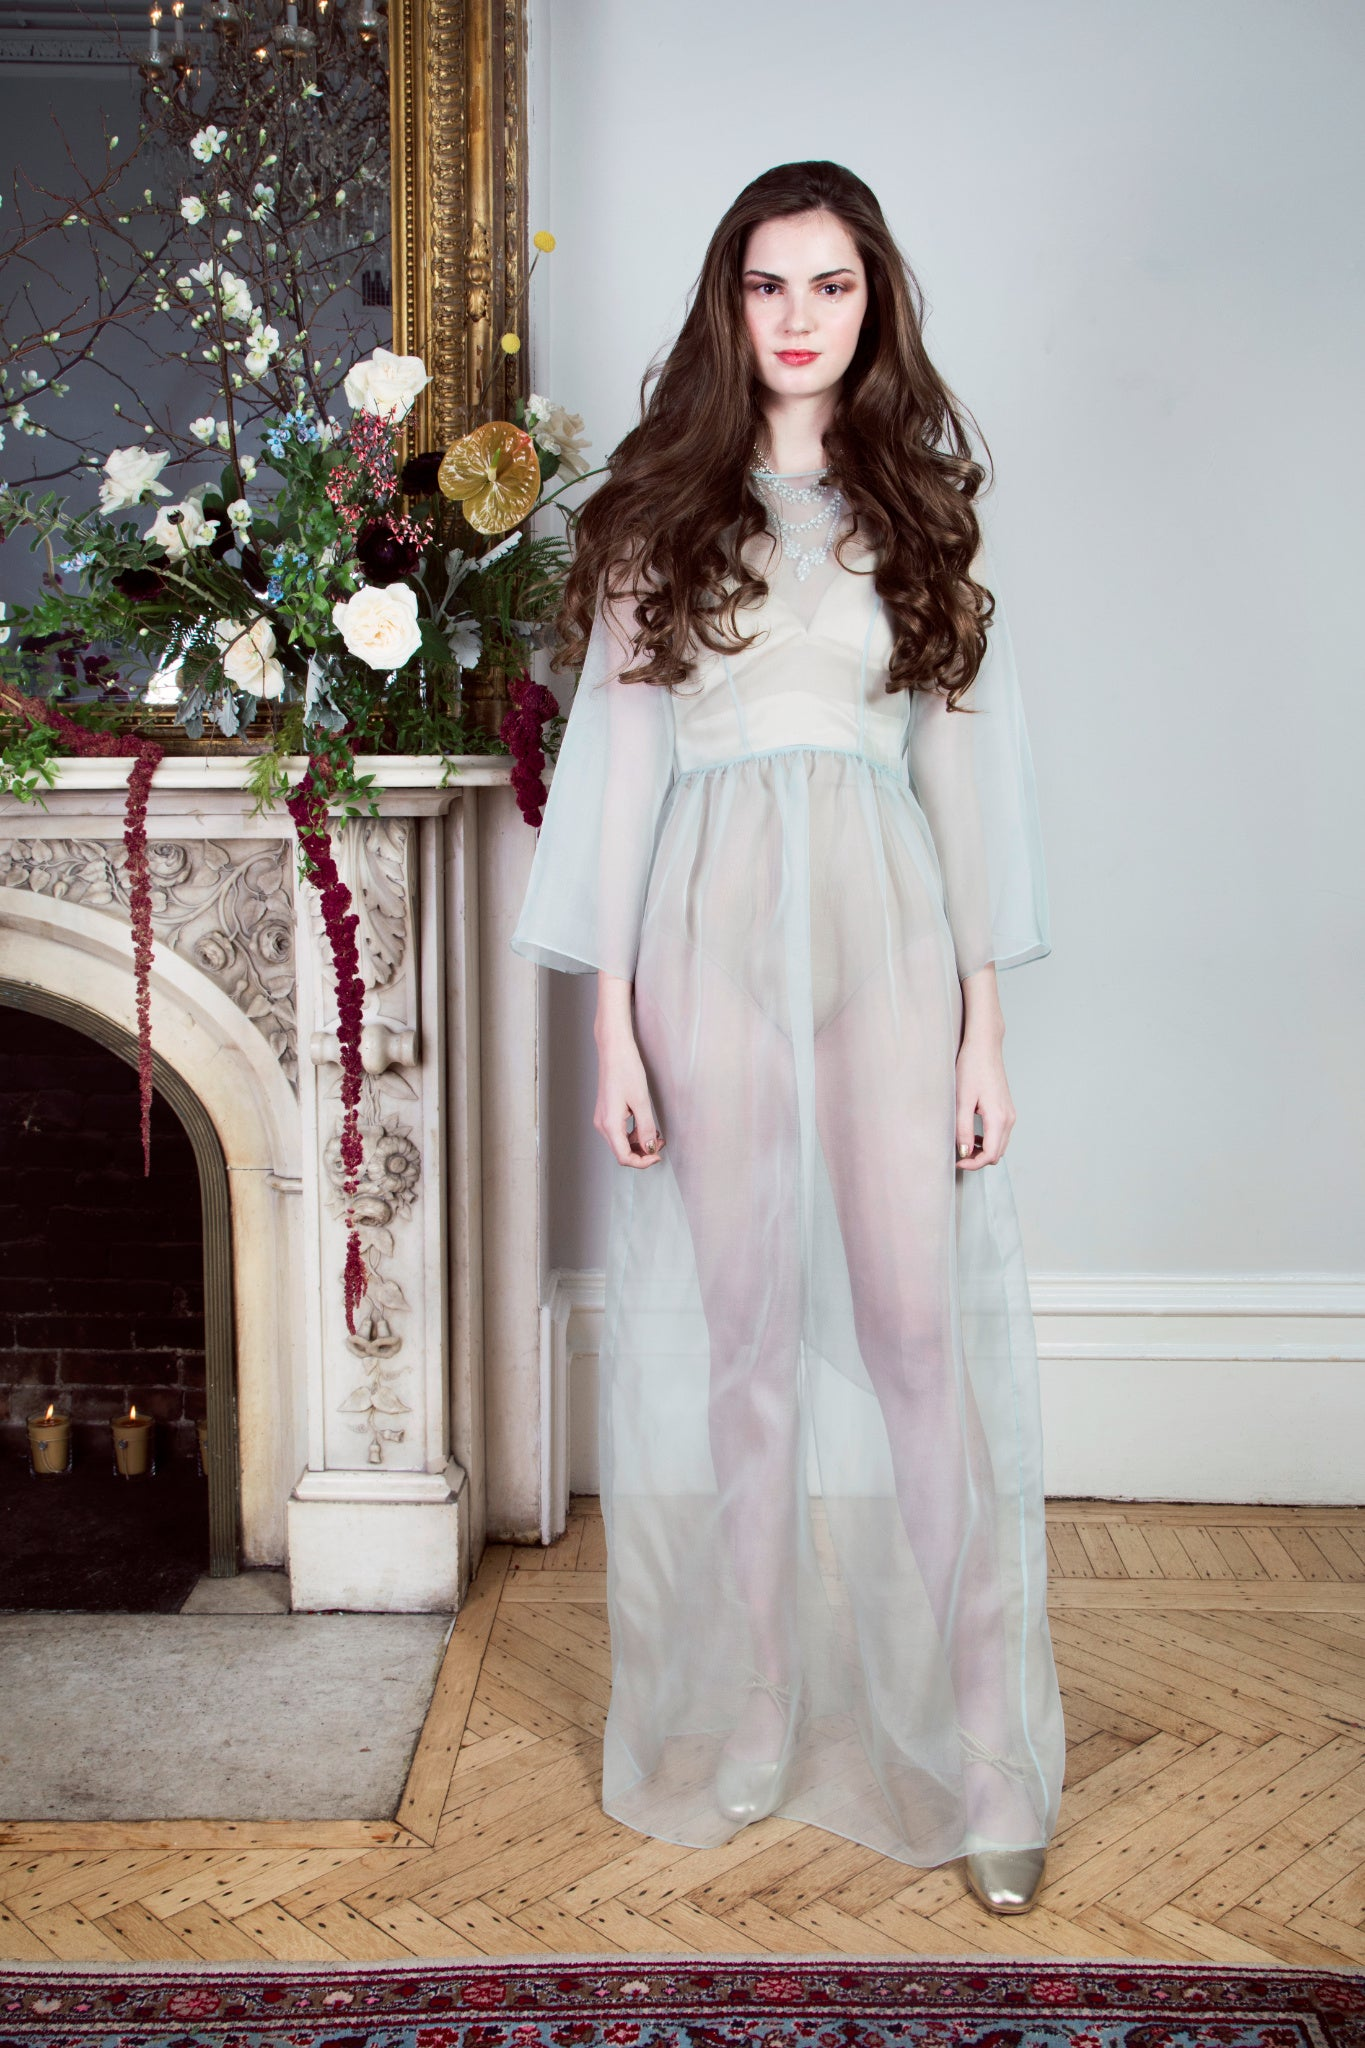 Abigail Sheer Gown